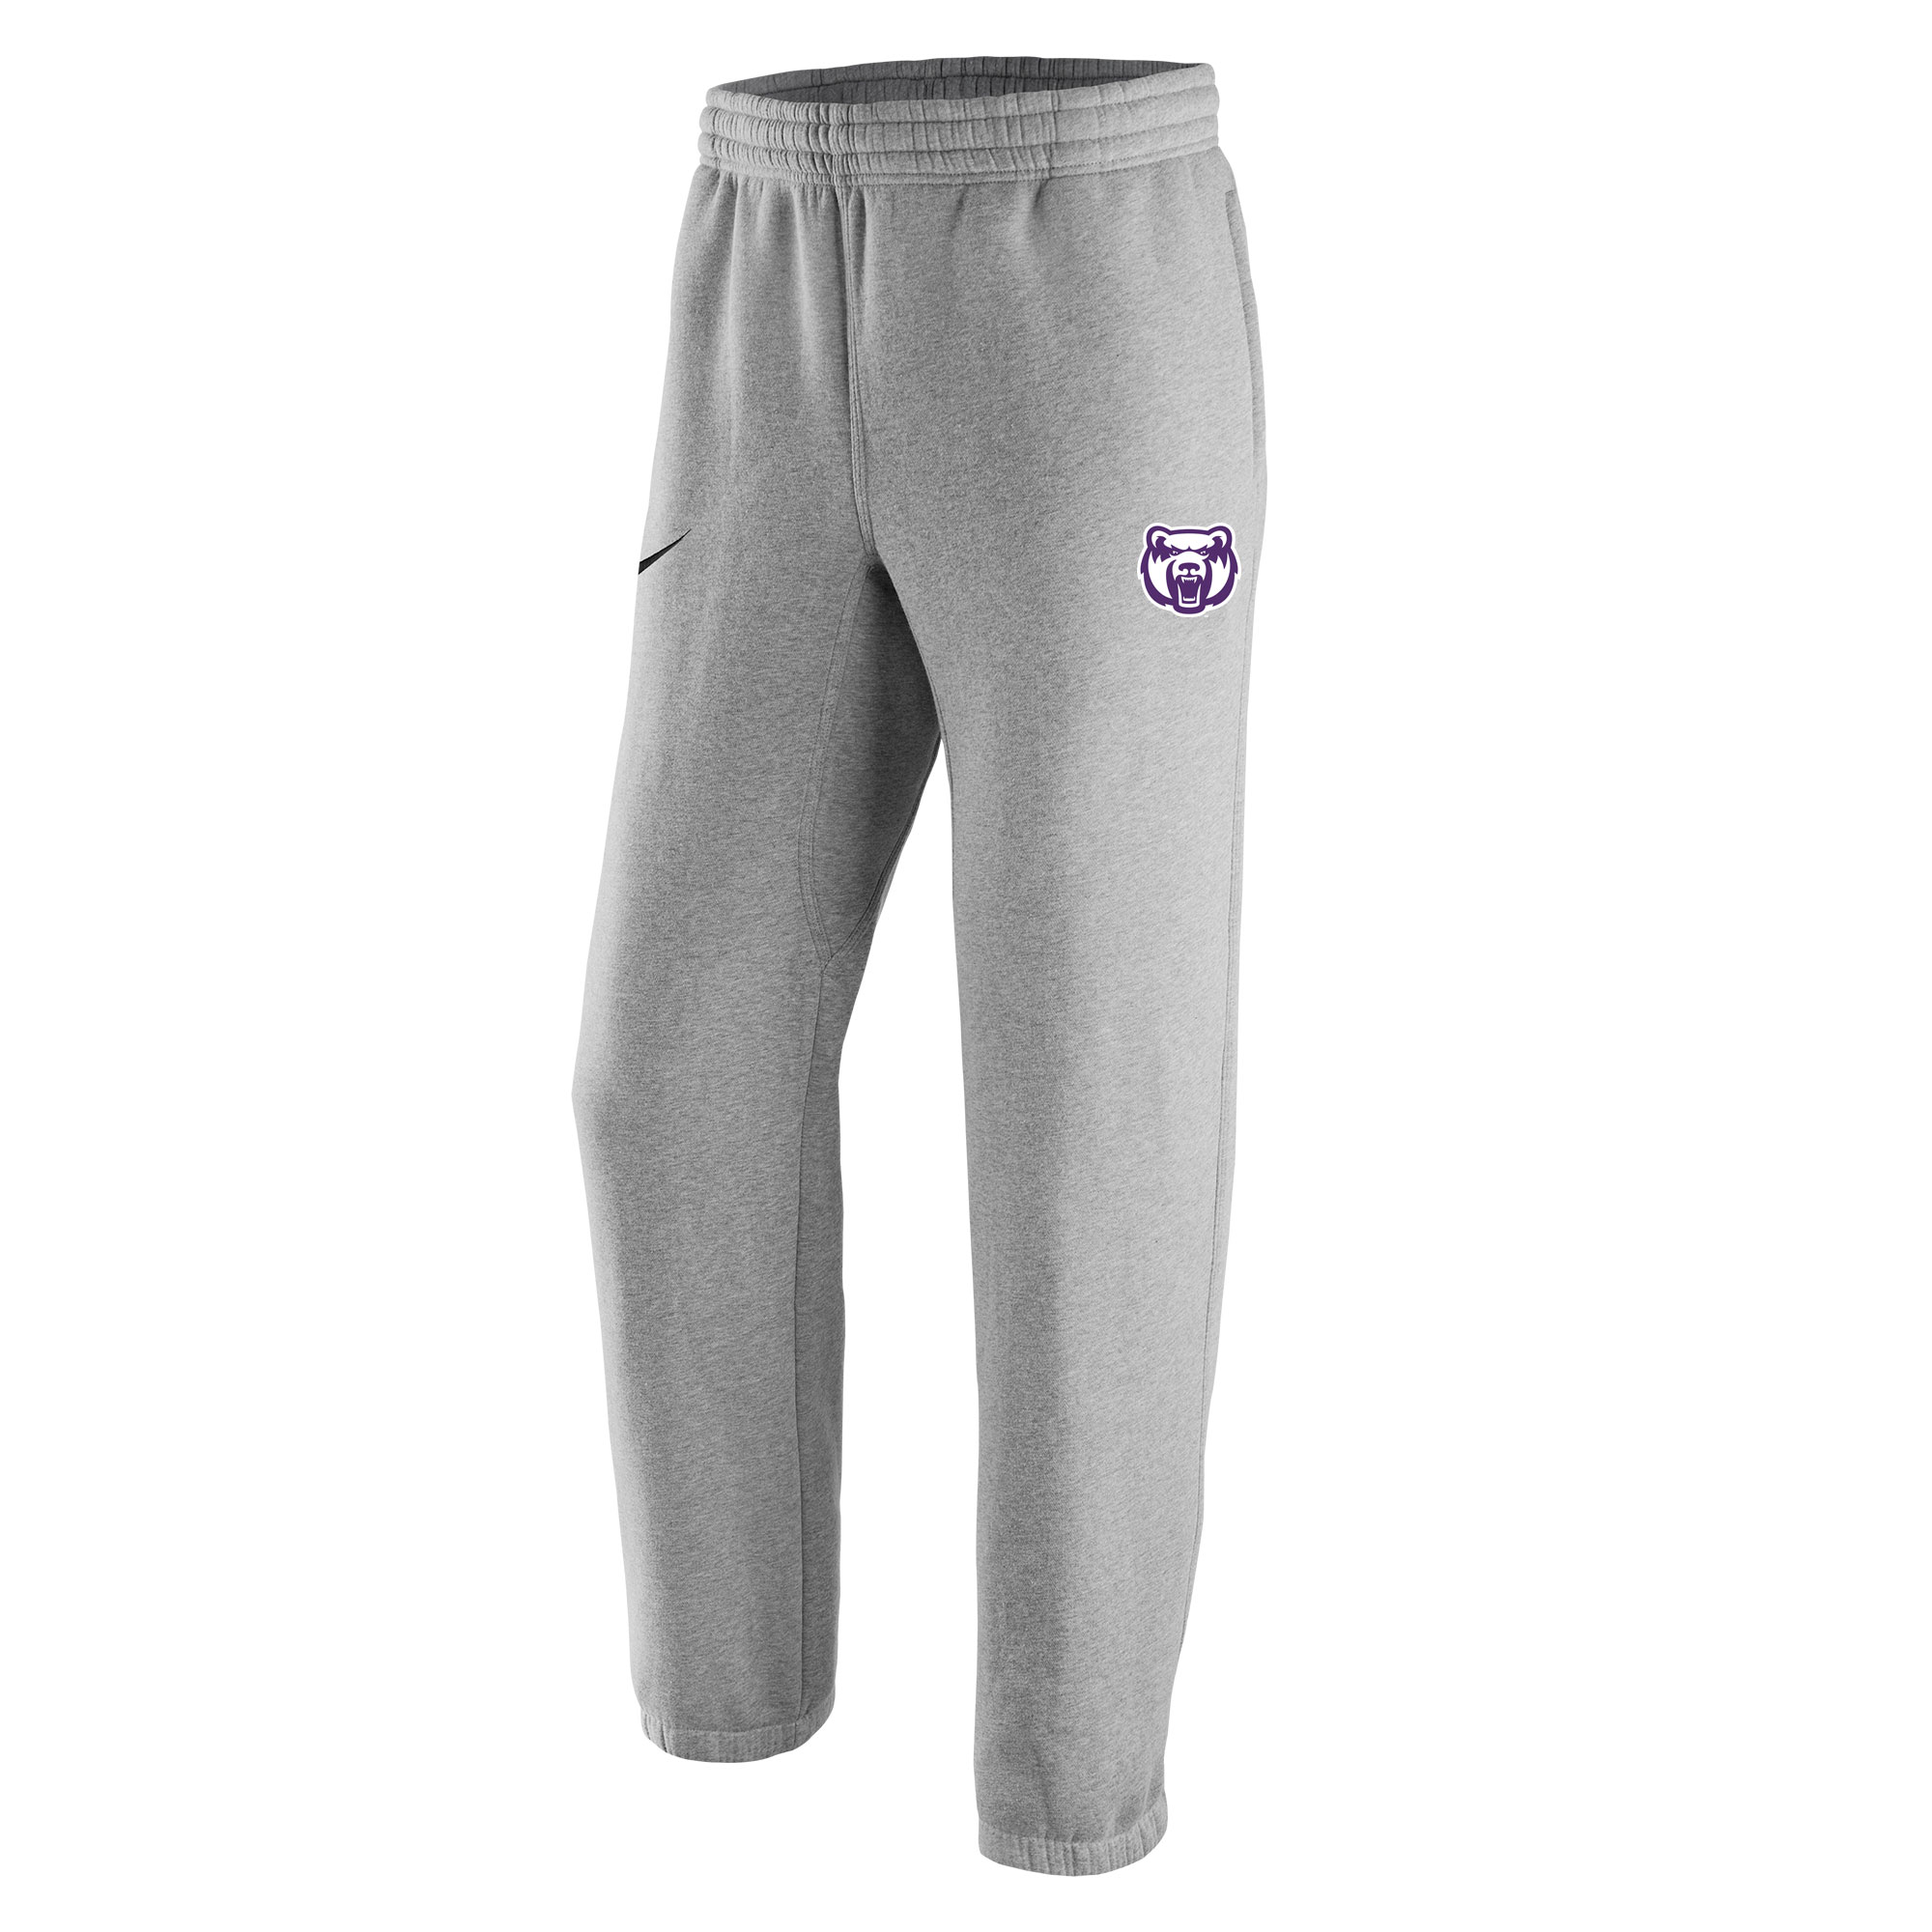 Stadium Club Fleece Pant